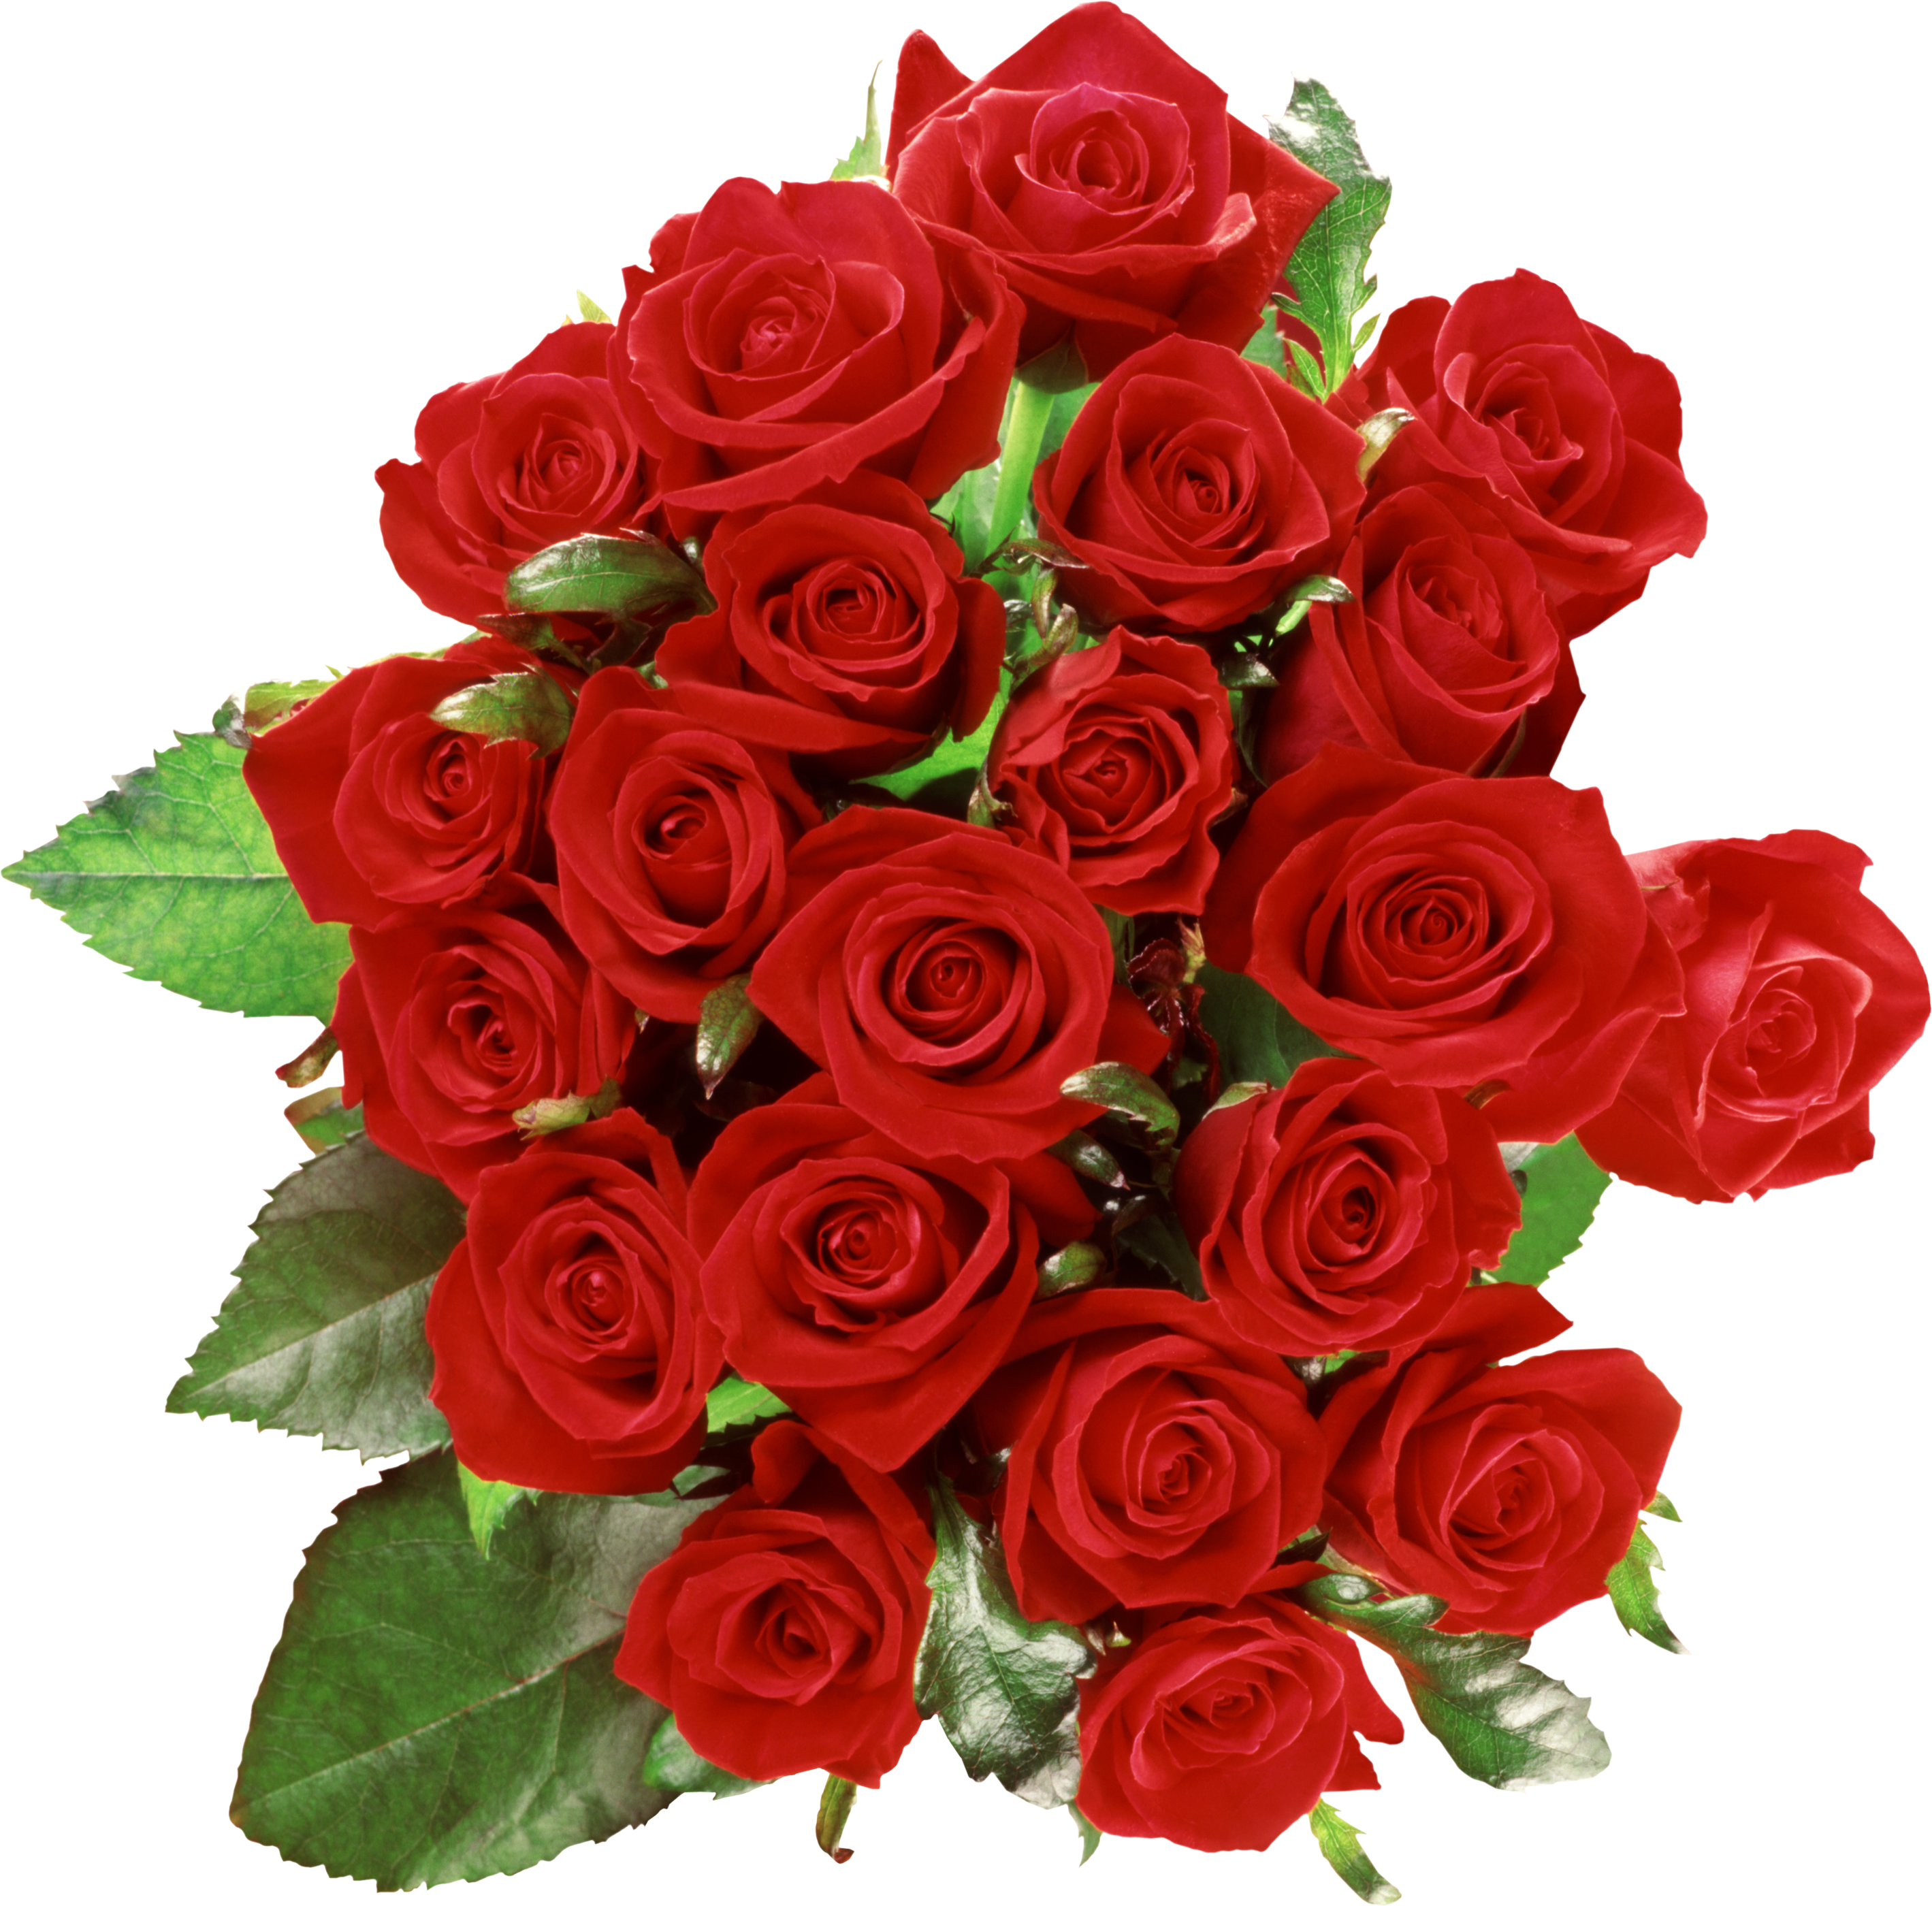 Bouquet of roses PNG image, free picture download - Flower PNG